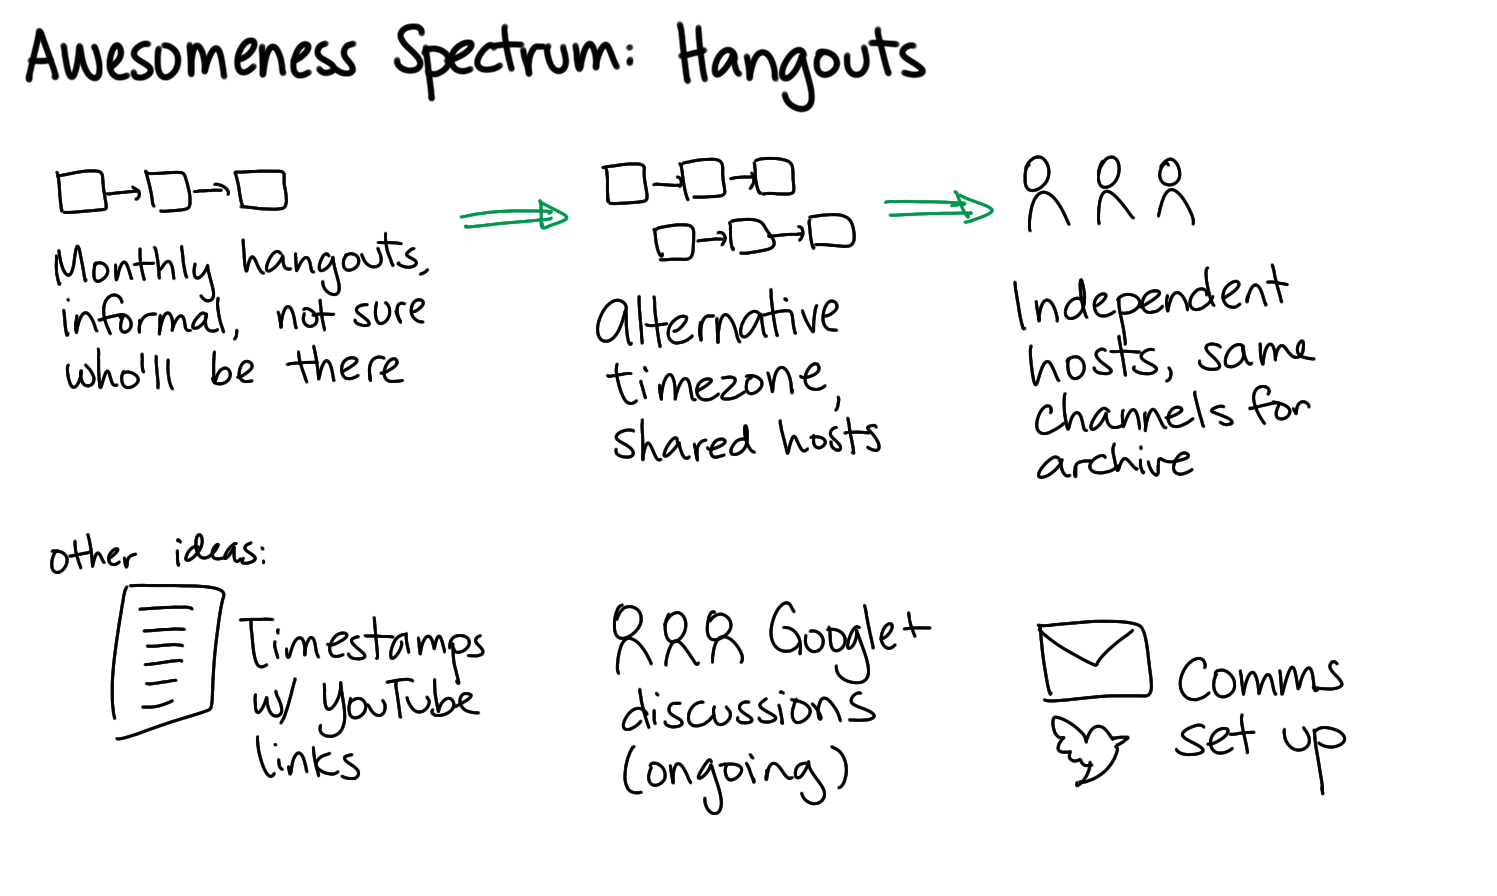 2015-04-08c Awesomeness Spectrum - Hangouts -- index card #emacs #hangouts #spectrum.png